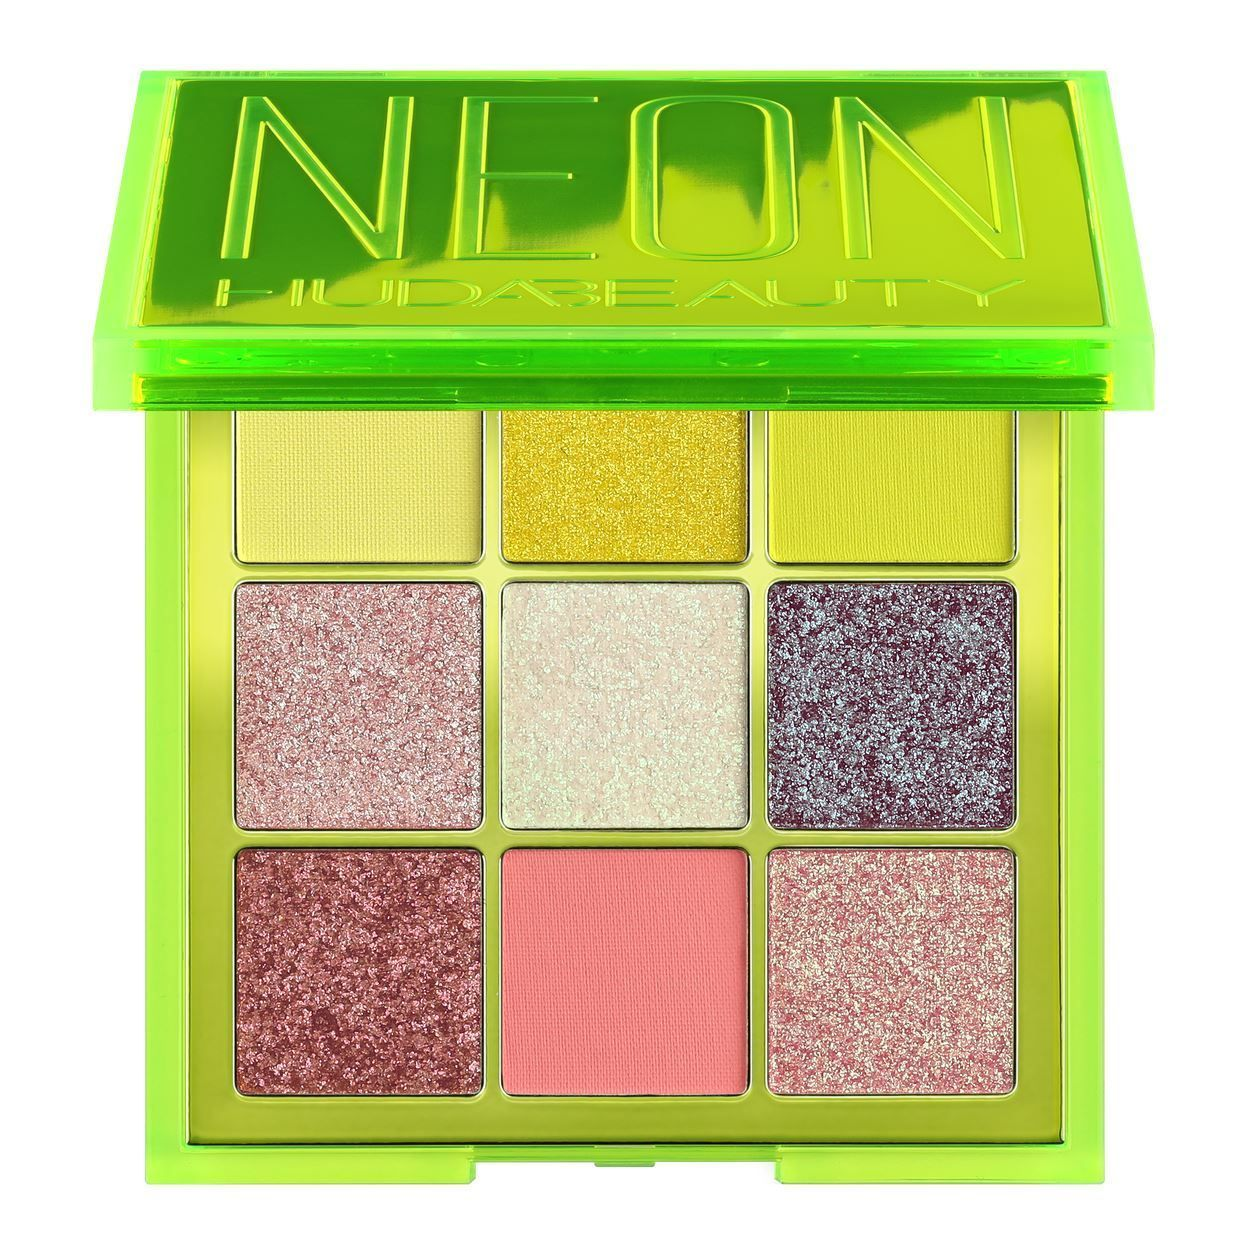 Neon Obsessions Eyeshadow Palette  - Neon Green